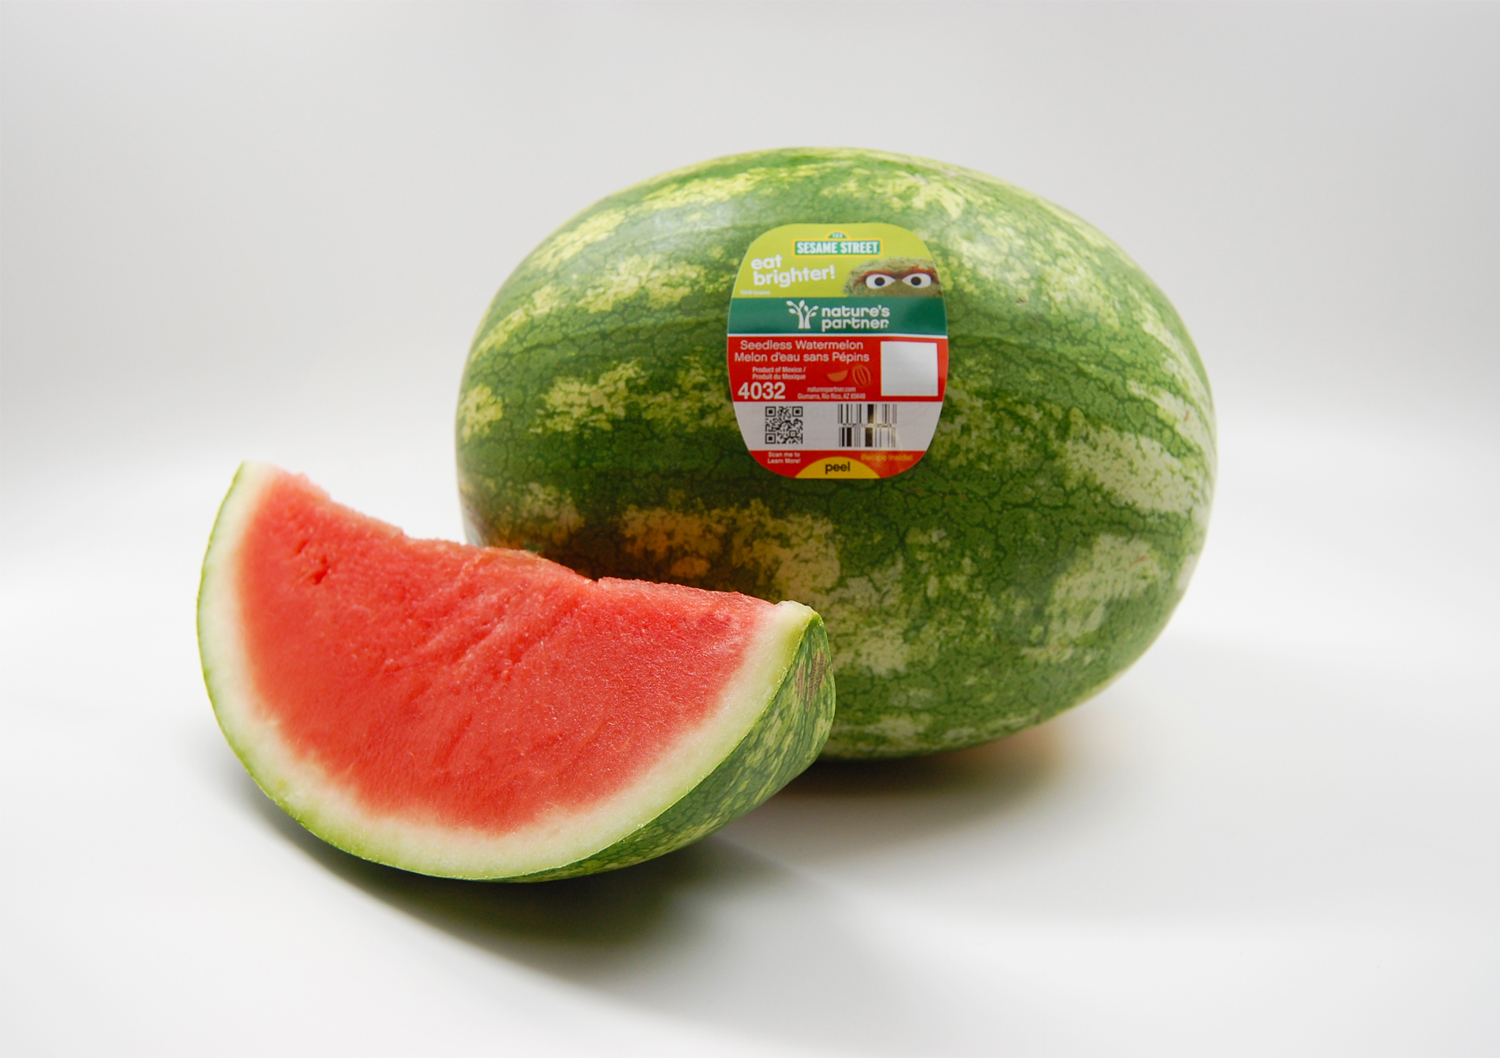 Nature's Partner watermelon from the promotion featured Oscar the Grouch  .     Click here to download high resolution image.